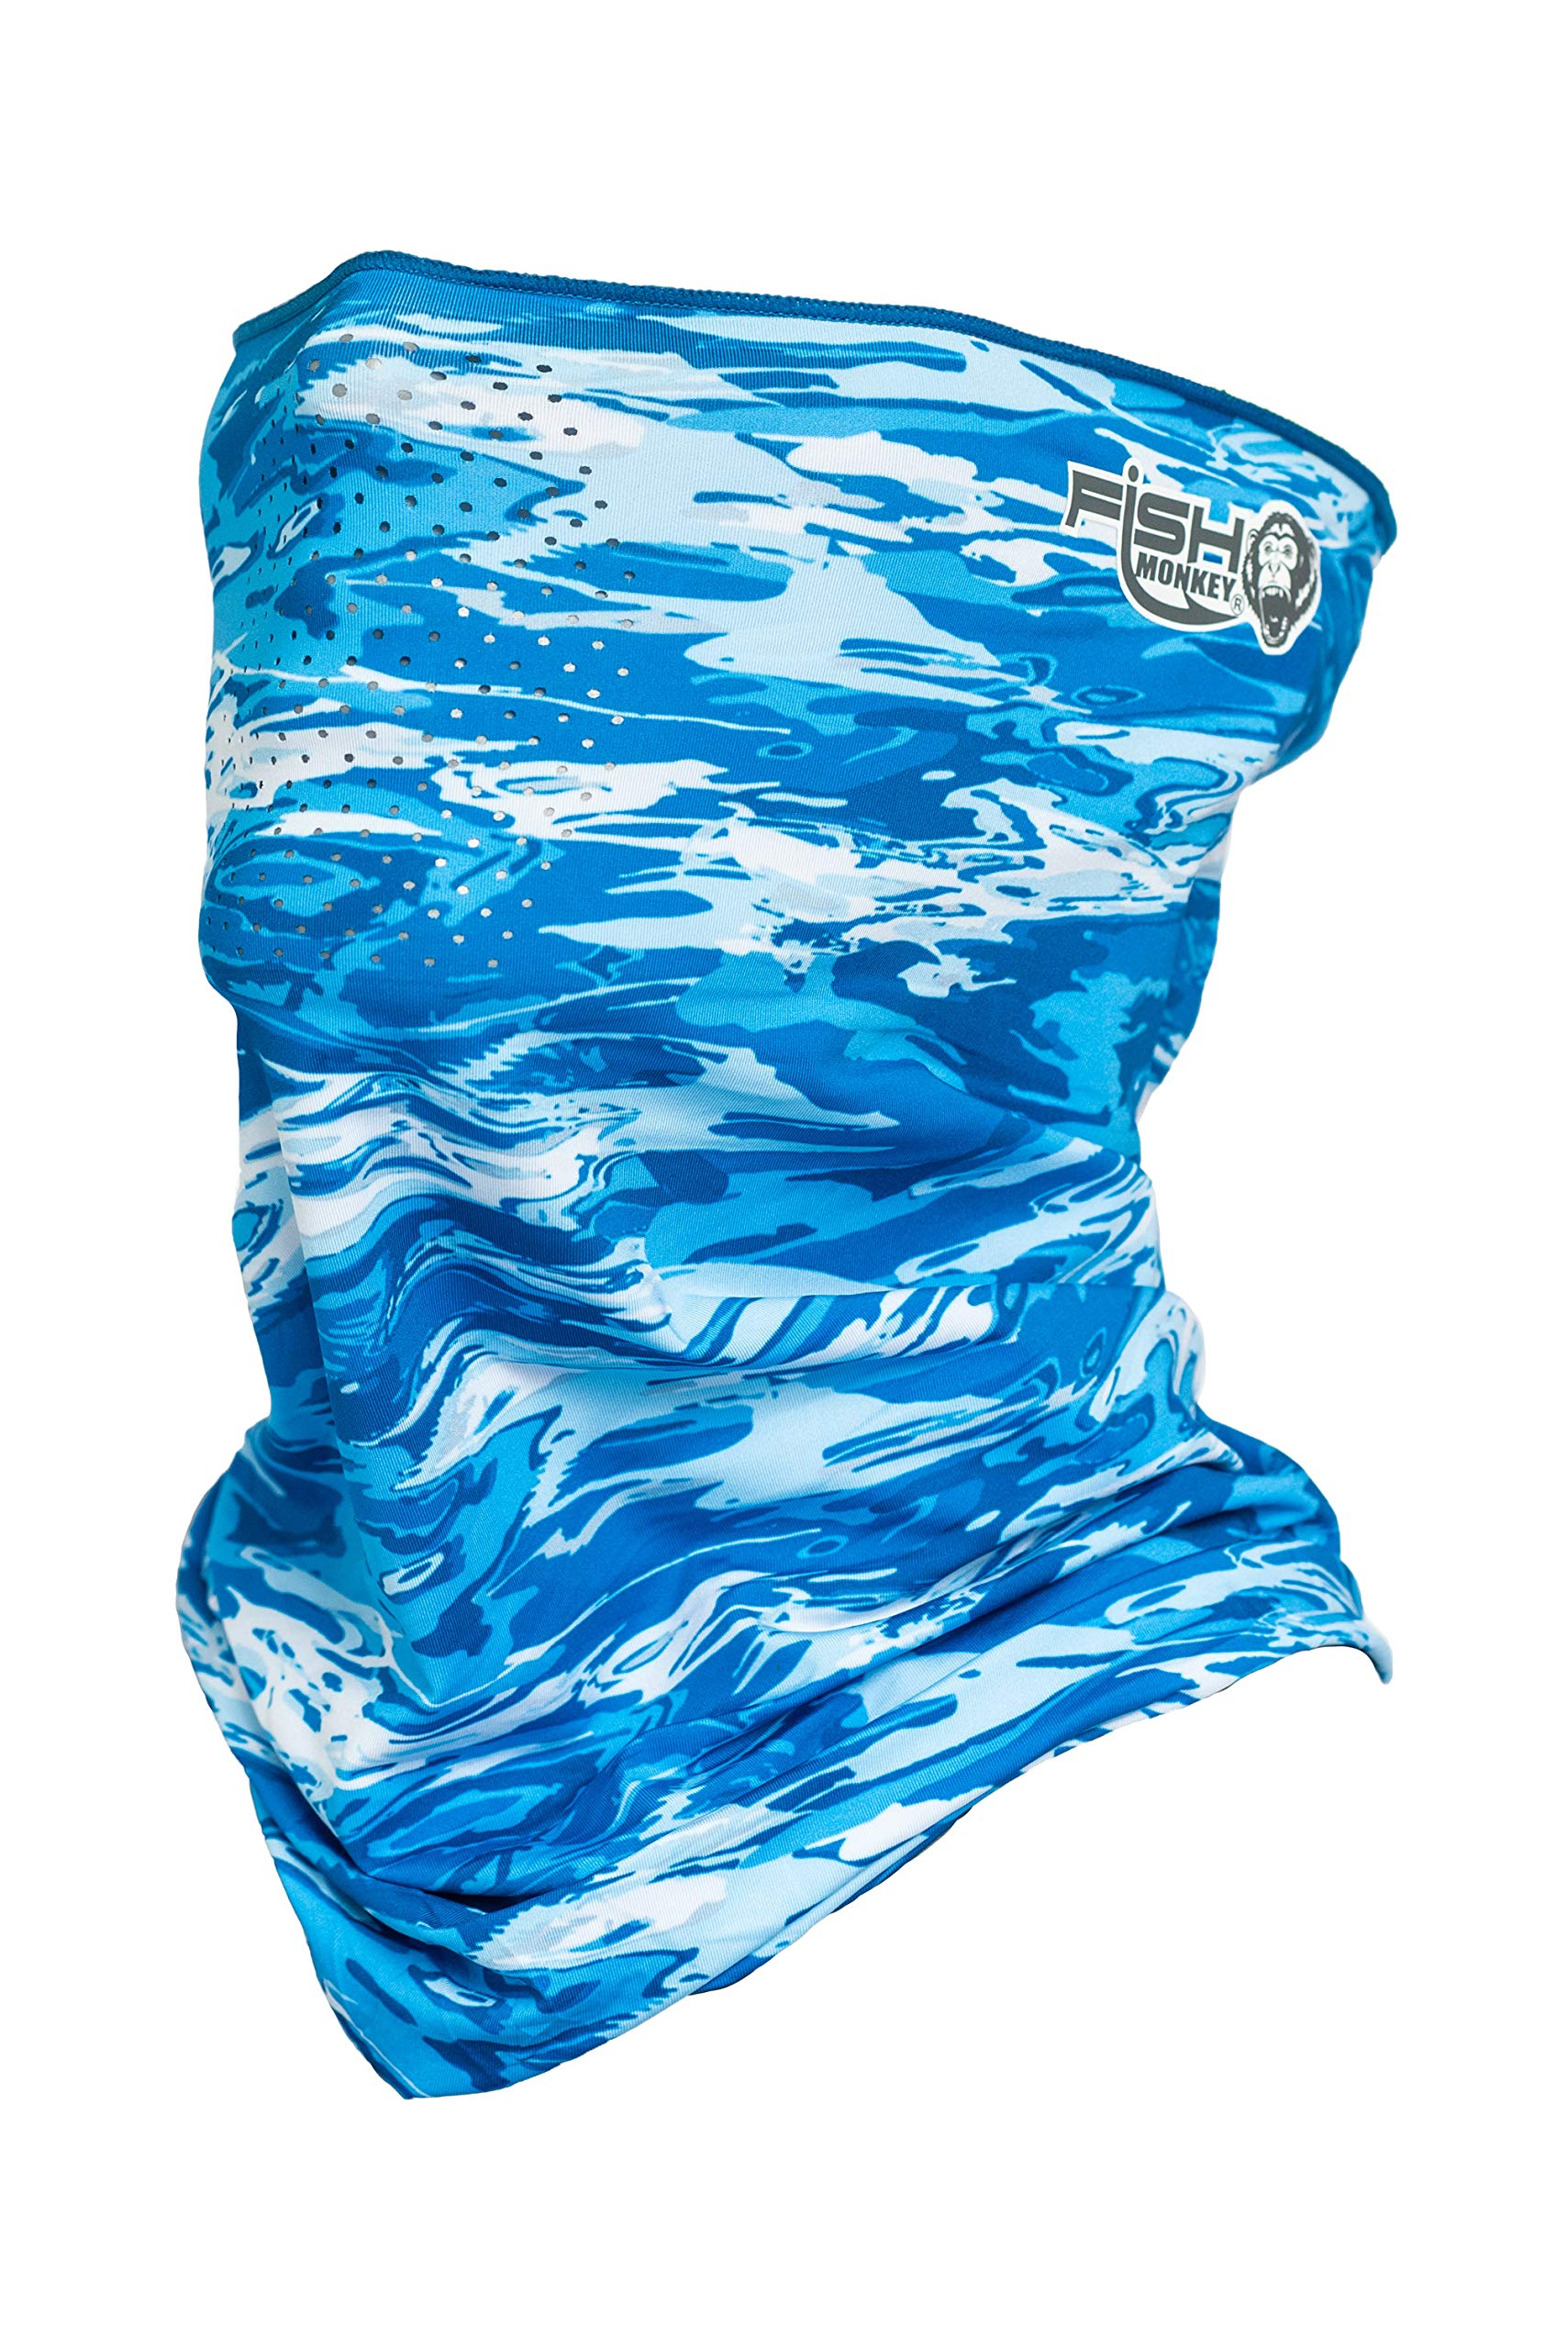 Fish Monkey Performance Face Guard (Blue Water Camo, One Size)